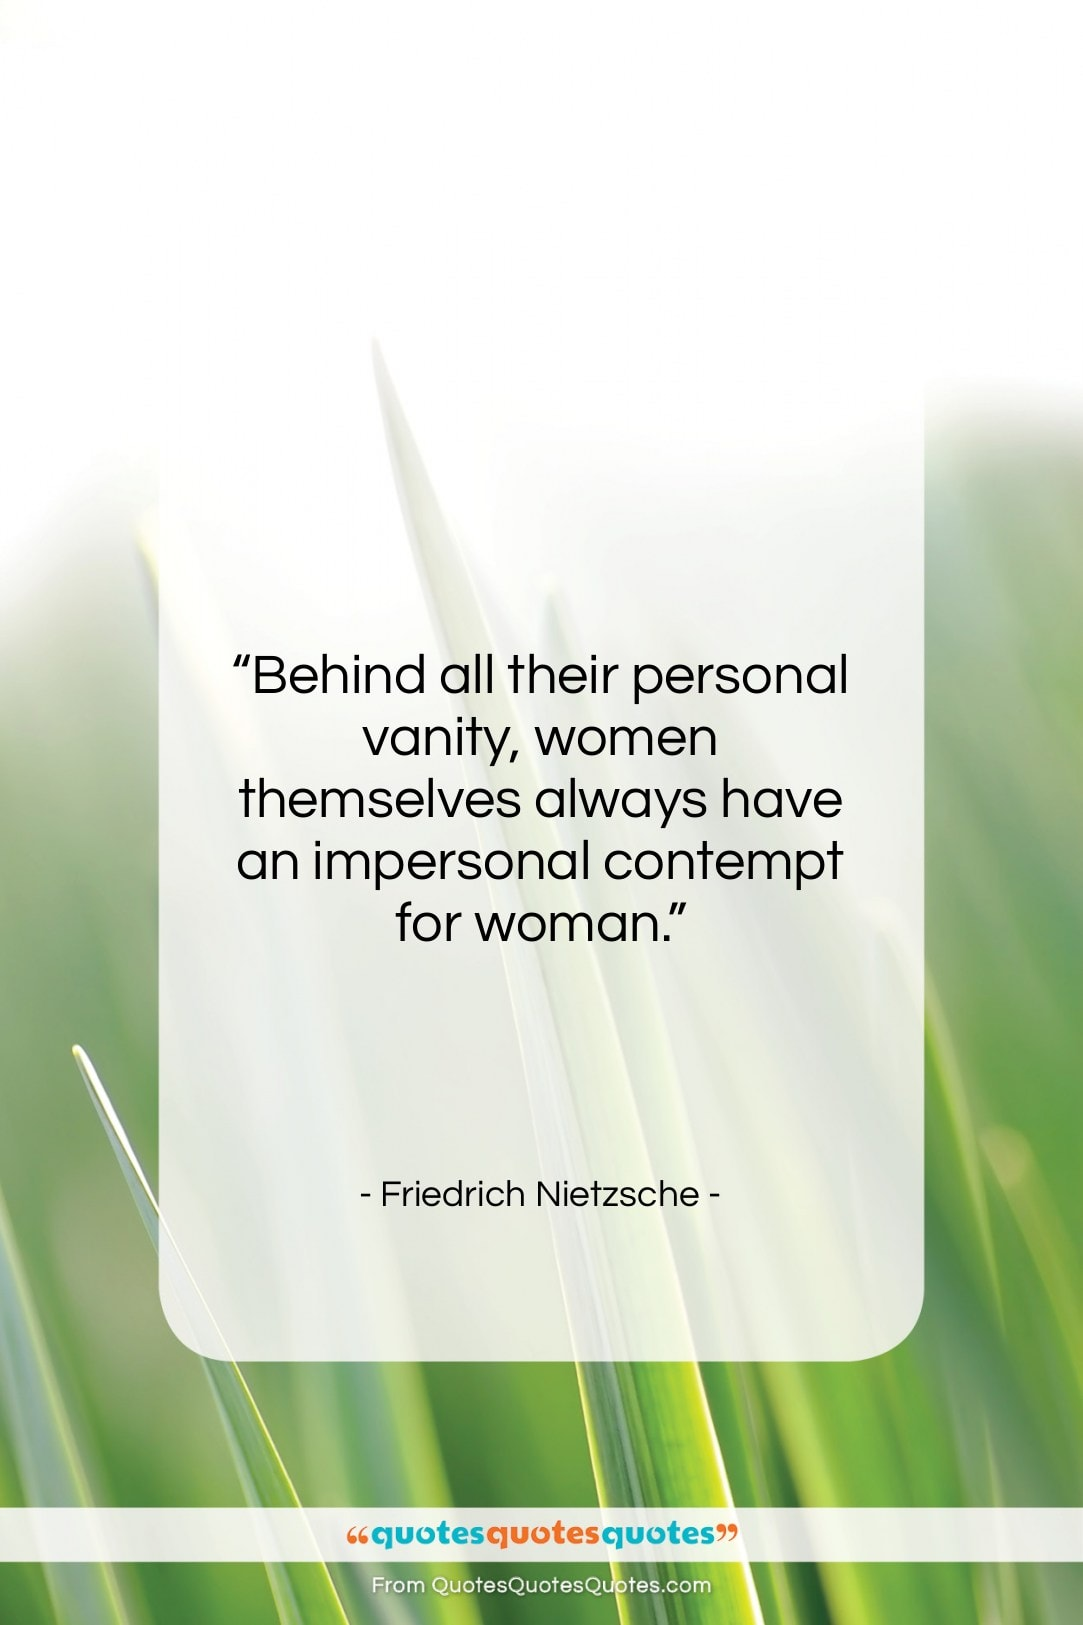 """Friedrich Nietzsche quote: """"Behind all their personal vanity, women themselves…""""- at QuotesQuotesQuotes.com"""